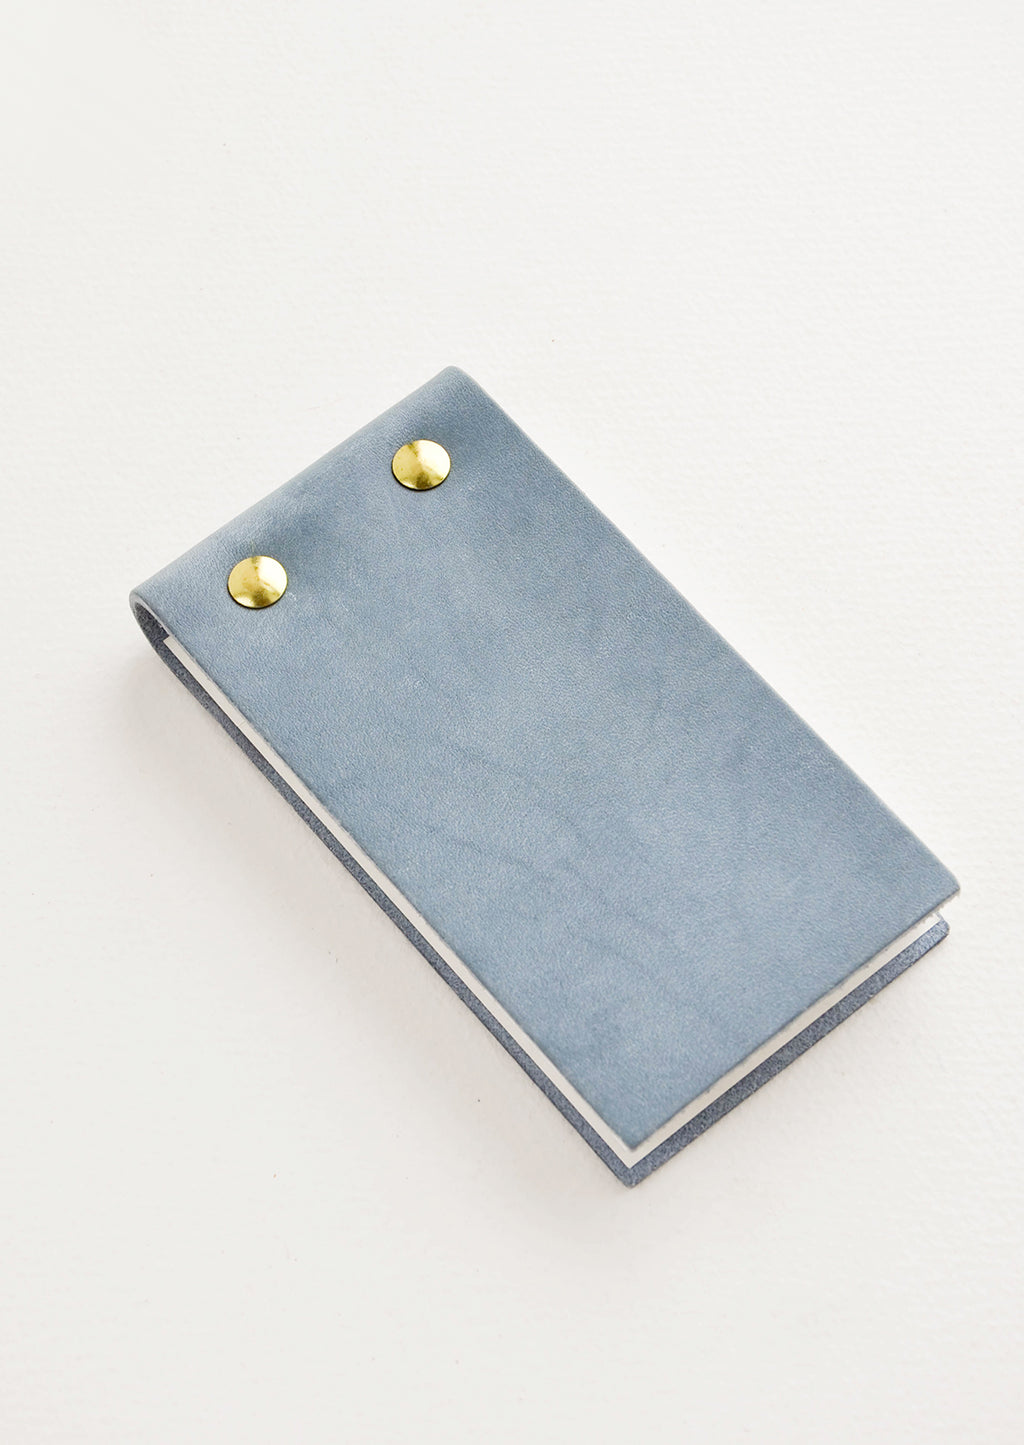 Dusty Blue: Small blue leather notepad with brass grommets.